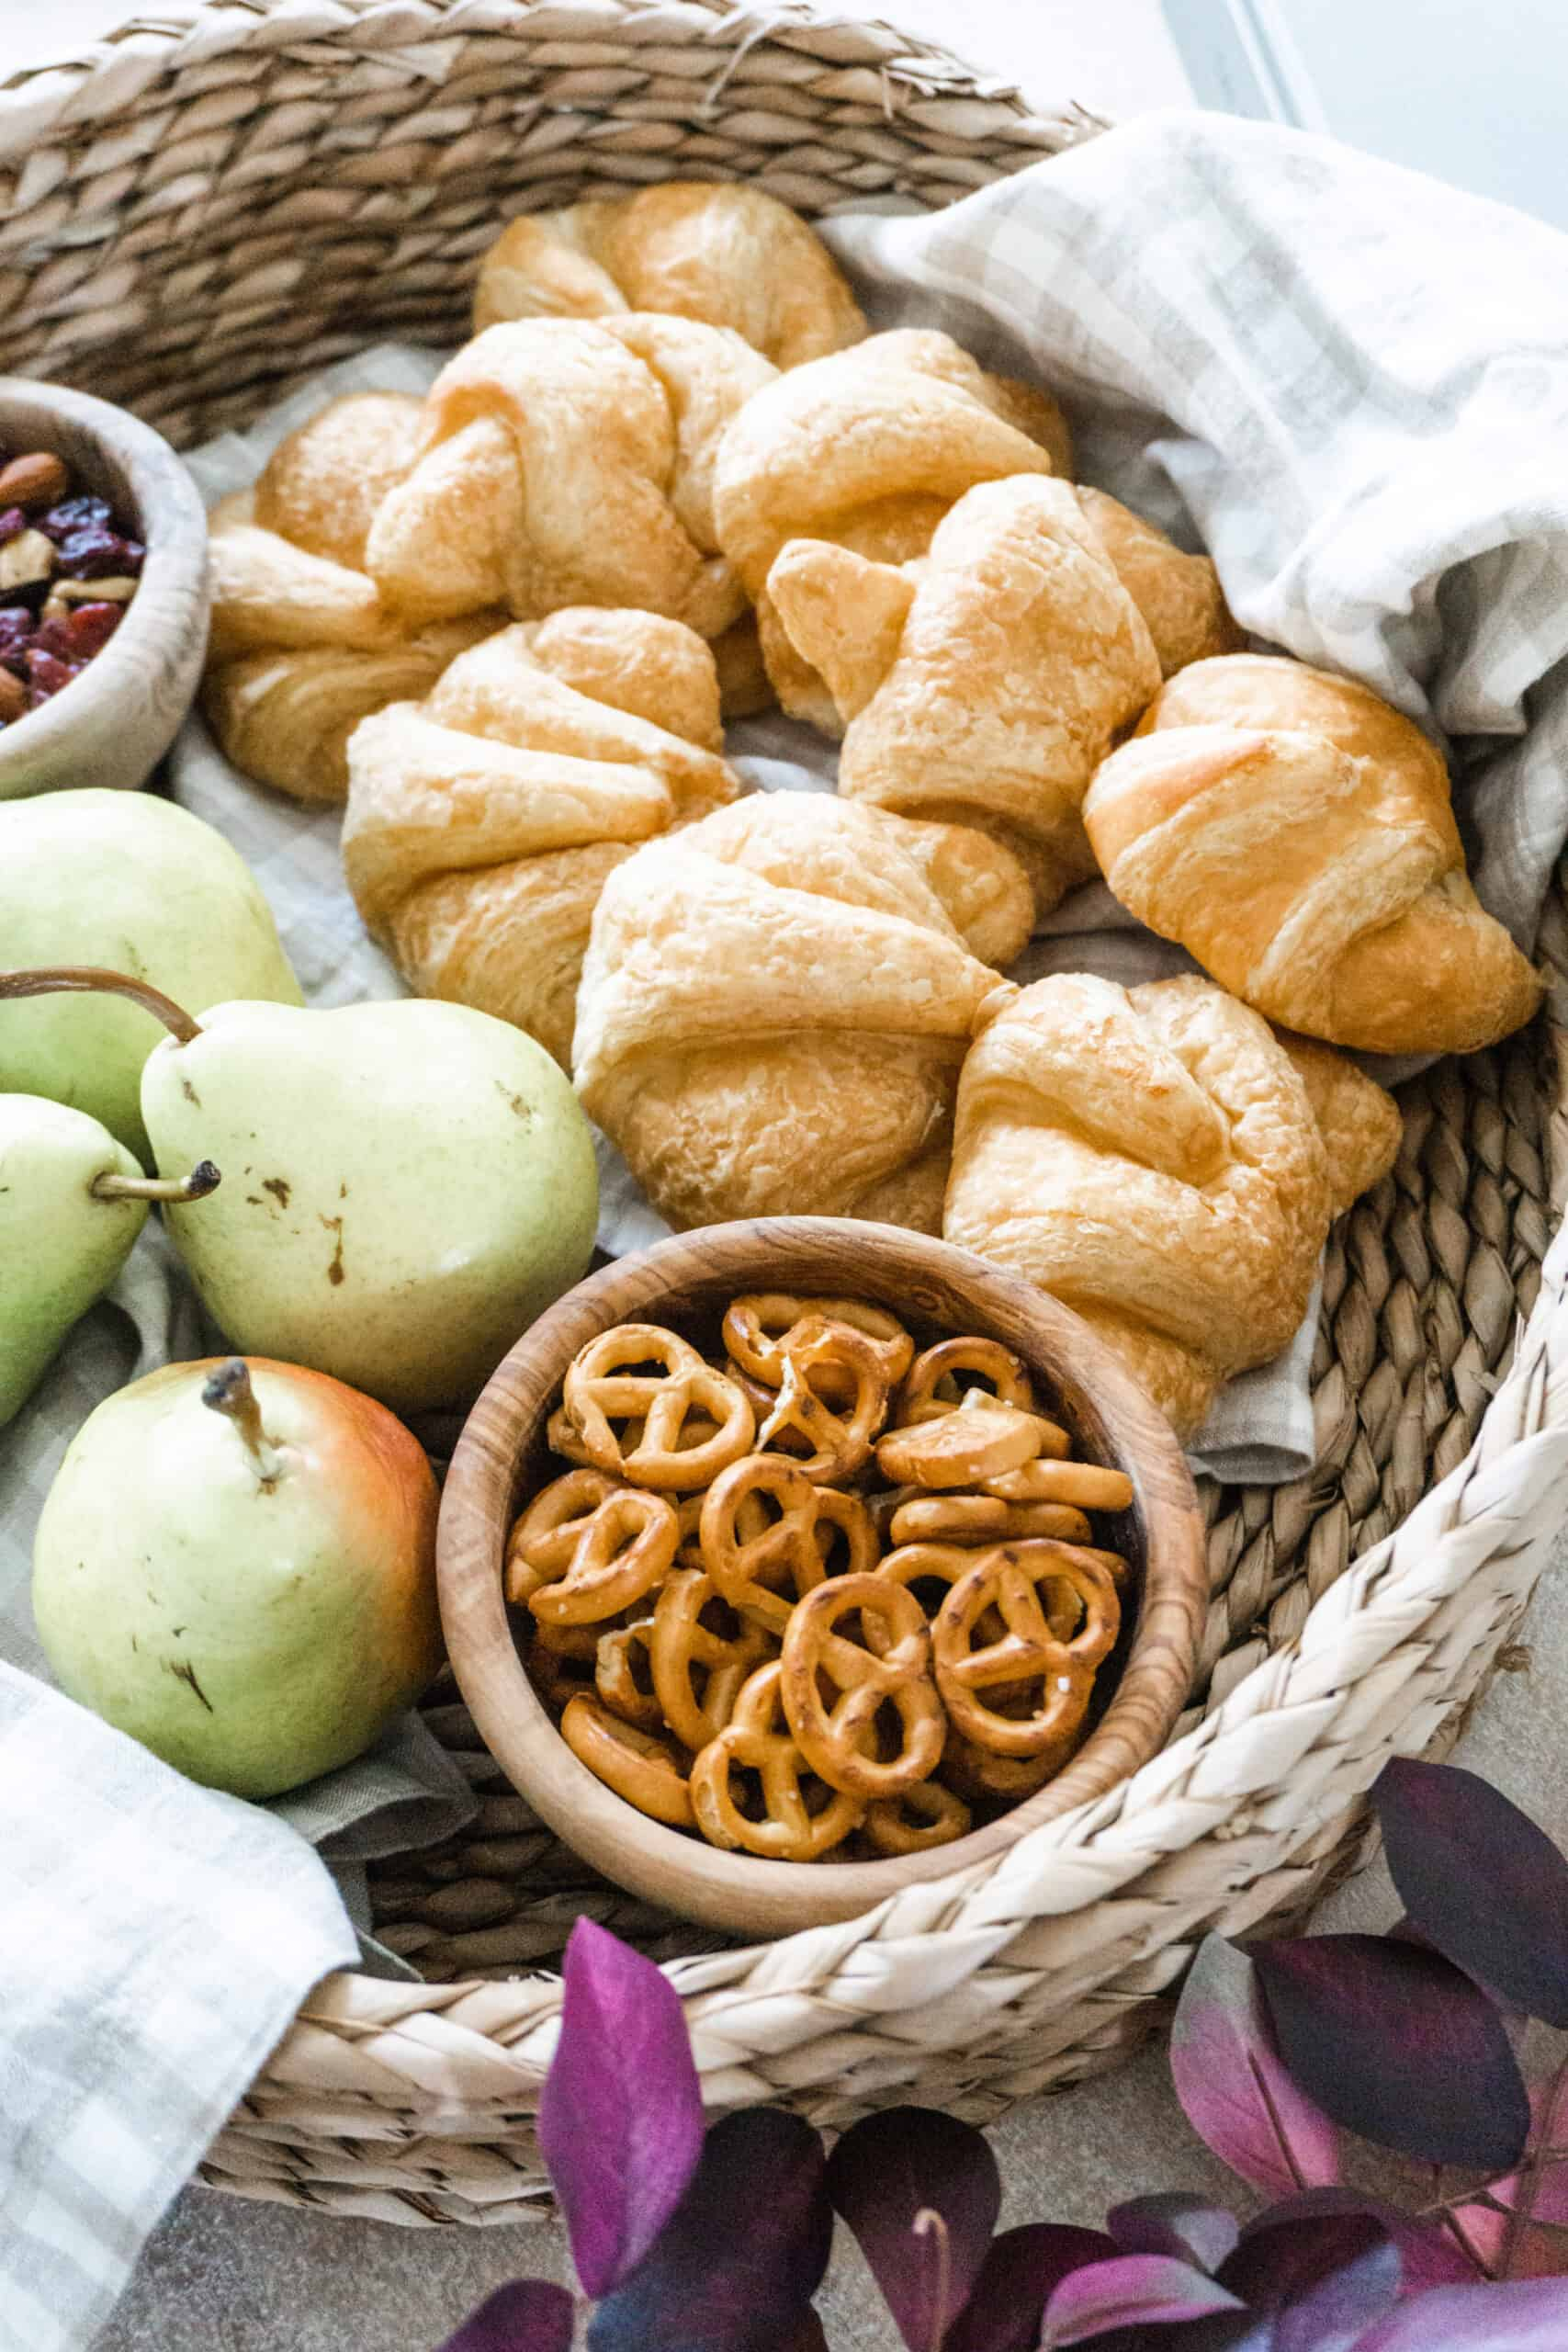 Basket tray styled with croissants and pears.